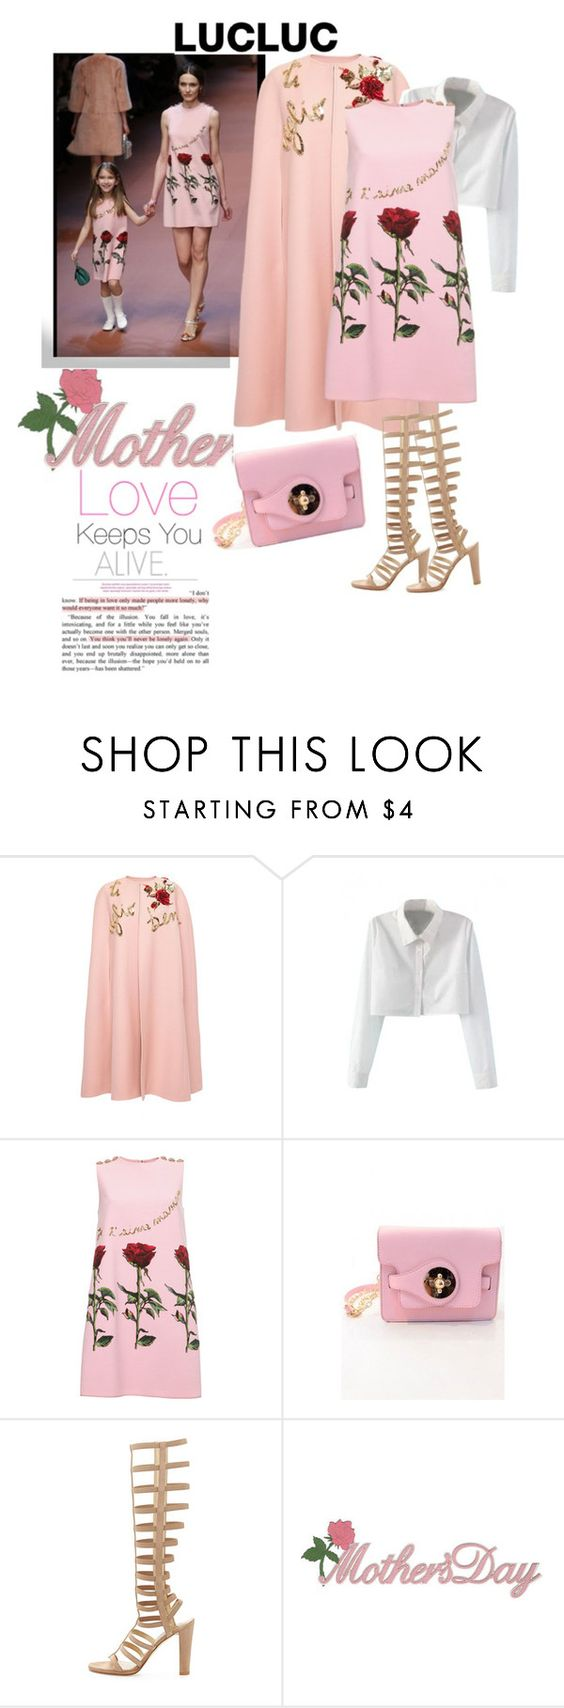 """""""Lucluc 22/2"""" by ade1-ccvii ❤ liked on Polyvore featuring Dolce&Gabbana, Stuart Weitzman and lucluc"""